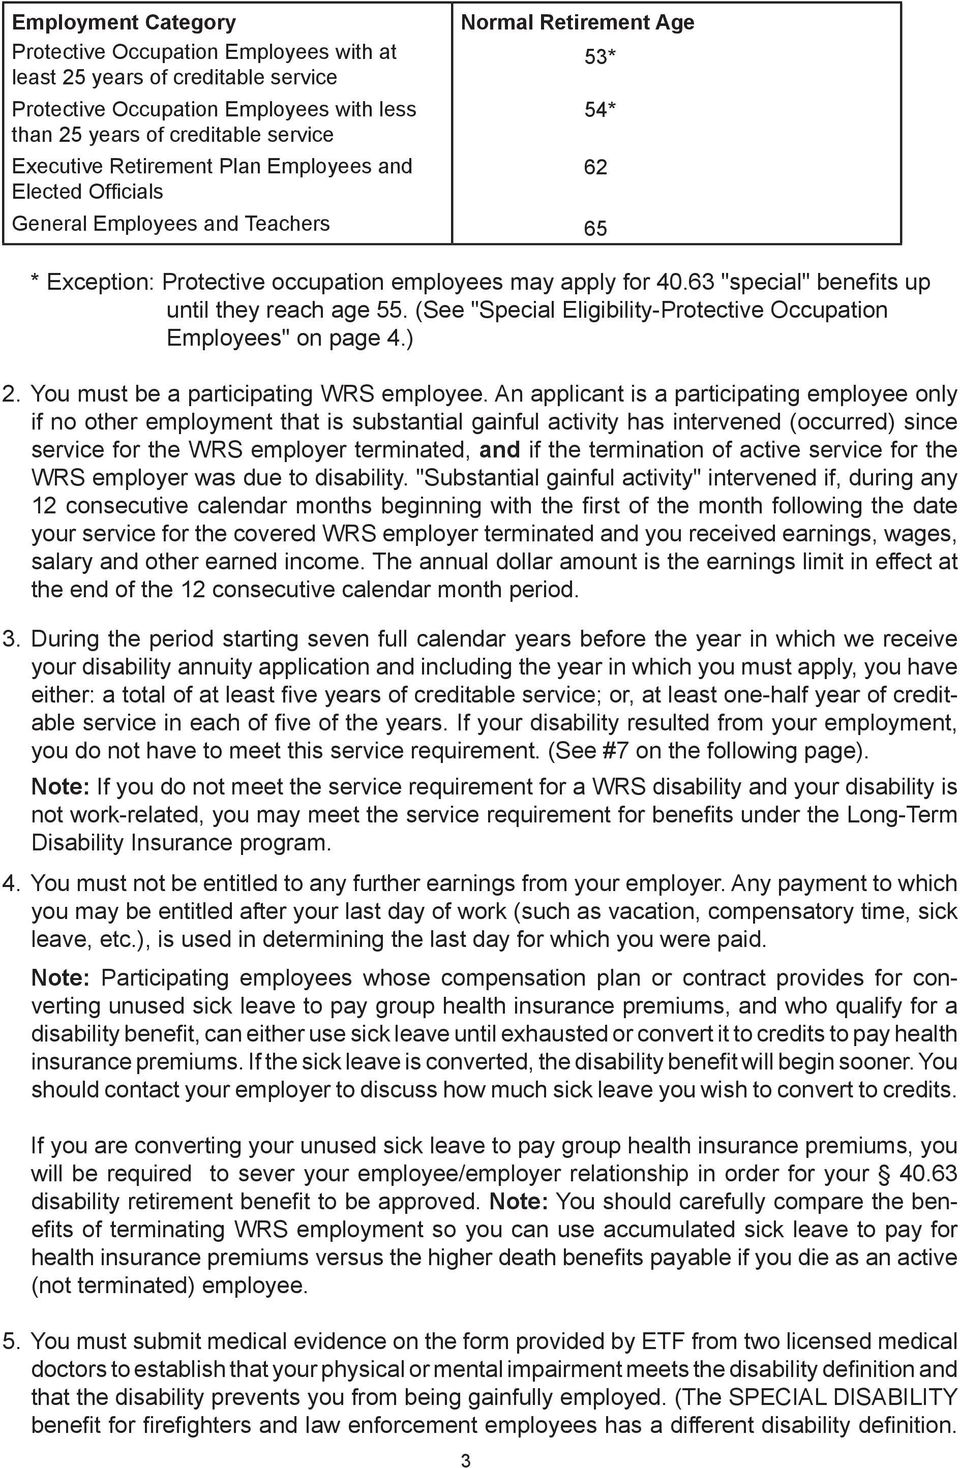 "63 ""special"" benefits up until they reach age 55. (See ""Special Eligibility-Protective Occupation Employees"" on page 4.) 2. You must be a participating WRS employee."